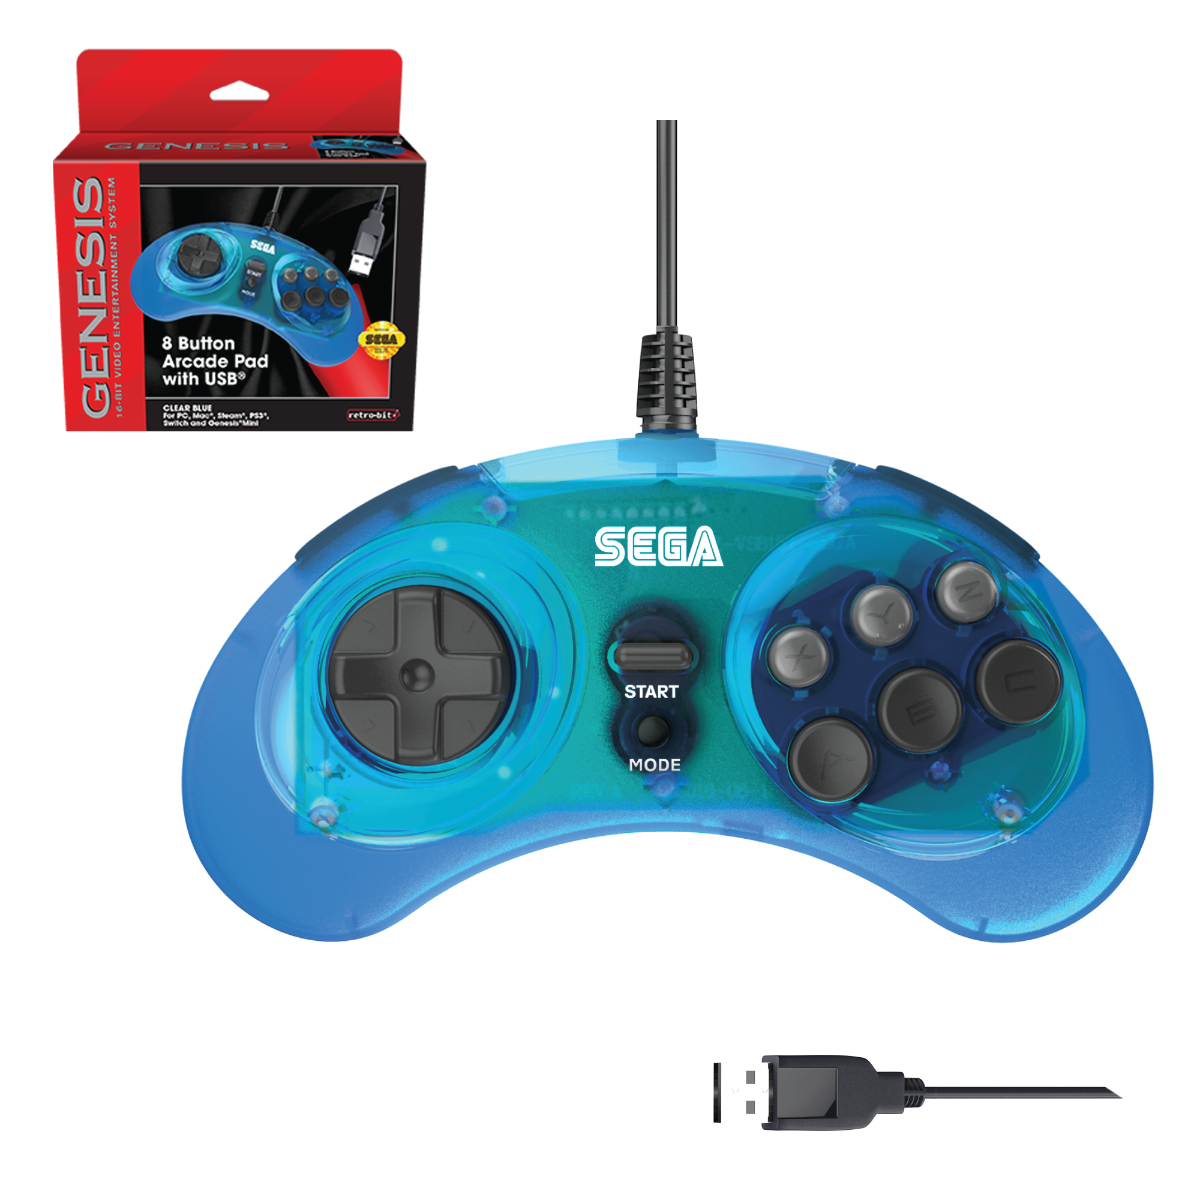 SEGA, Genesis, Arcade Pad, 8 Button, Clear Blue, USB